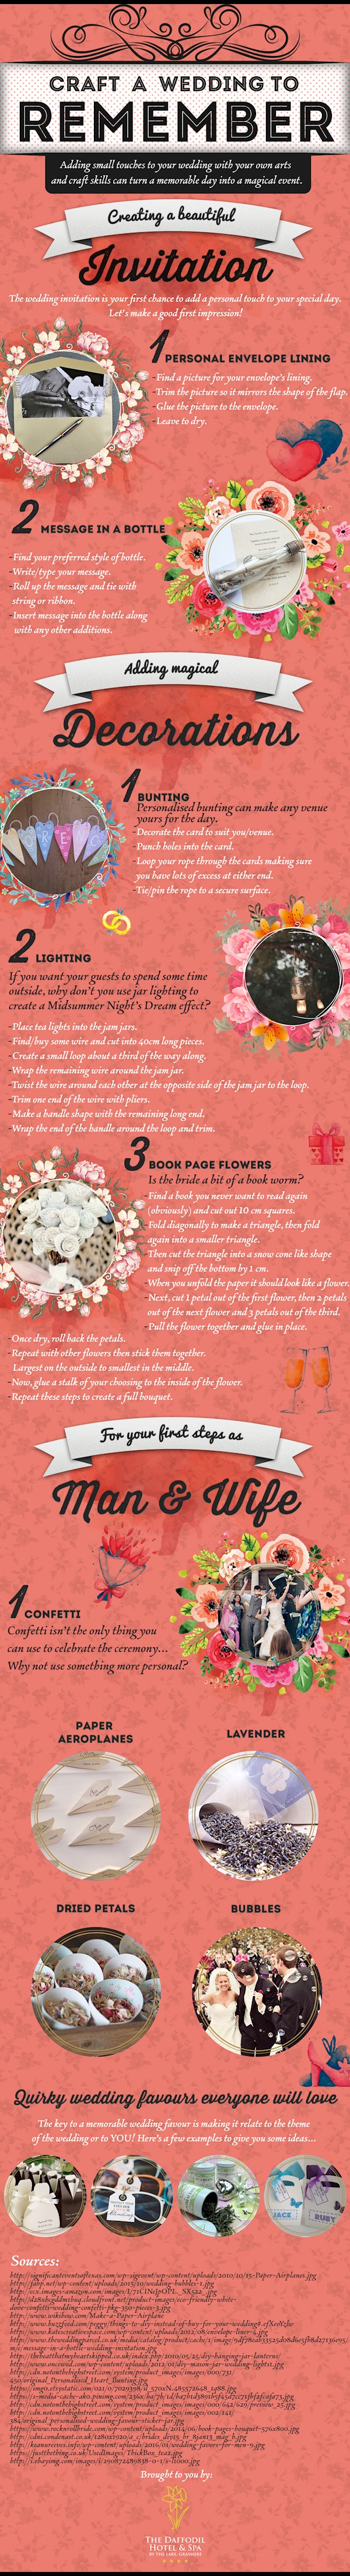 Craft A Wedding To Remember | The Daffodil Hotel & Spa